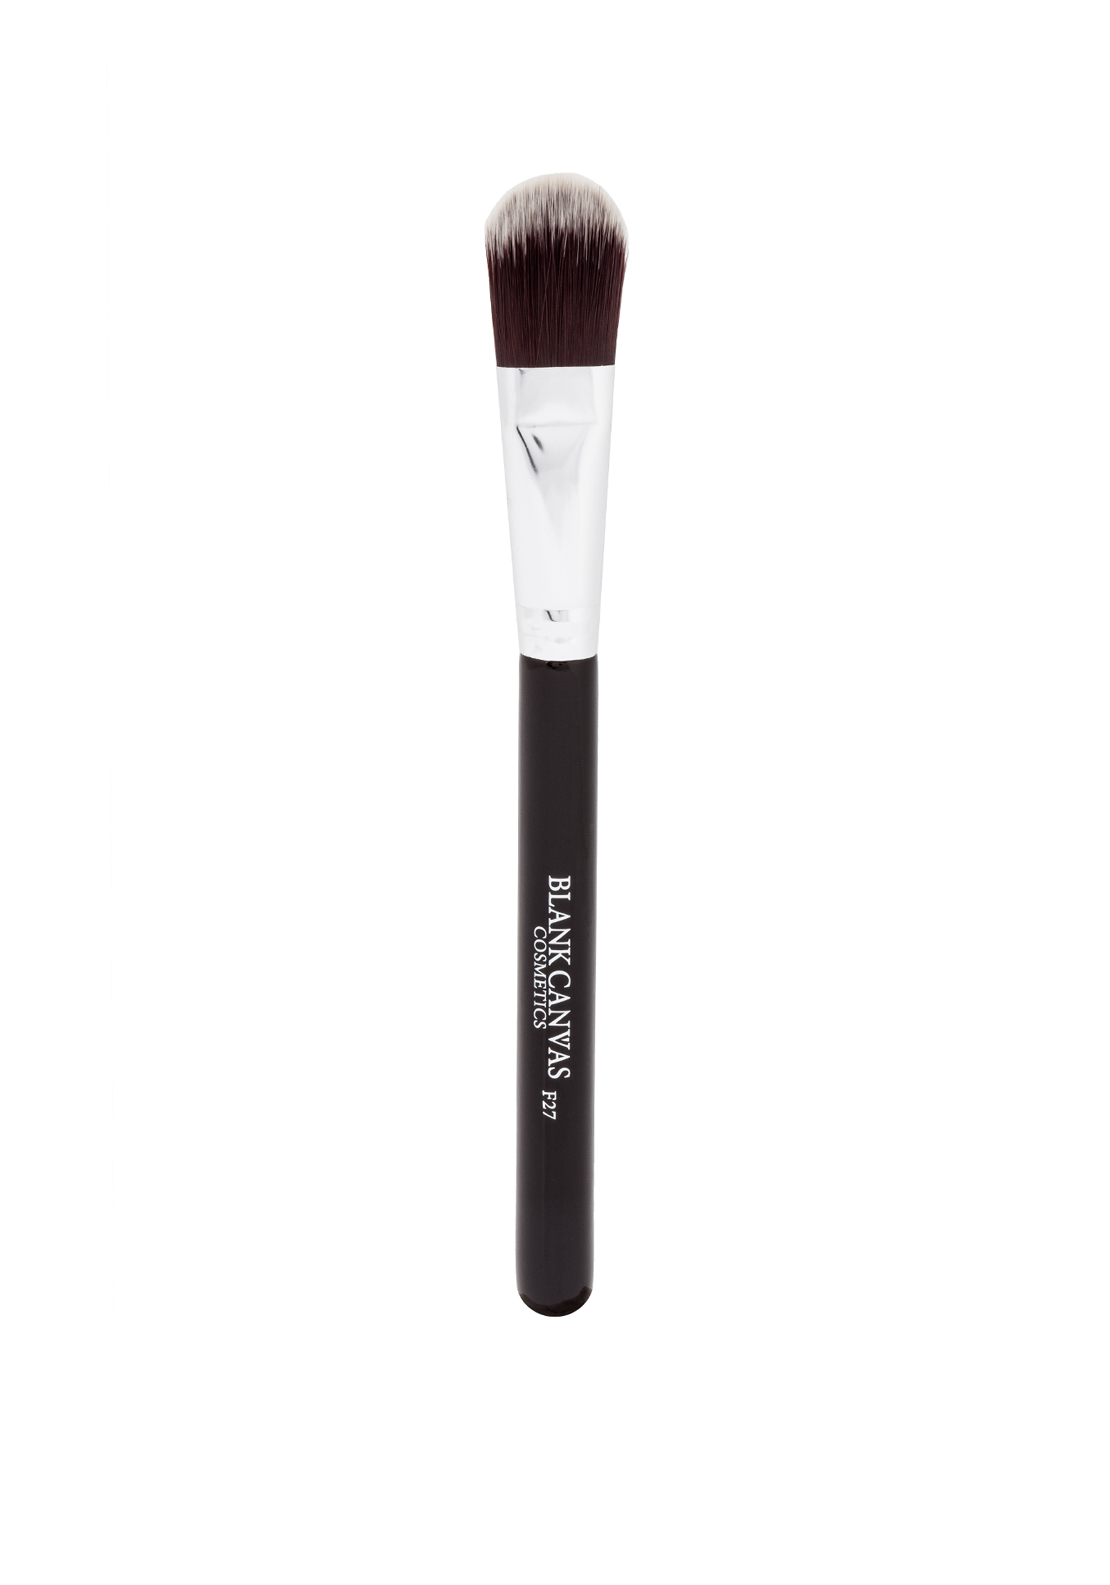 Blank Canvas Cosmetics F27 Flat Foundation Brush, Painter Style